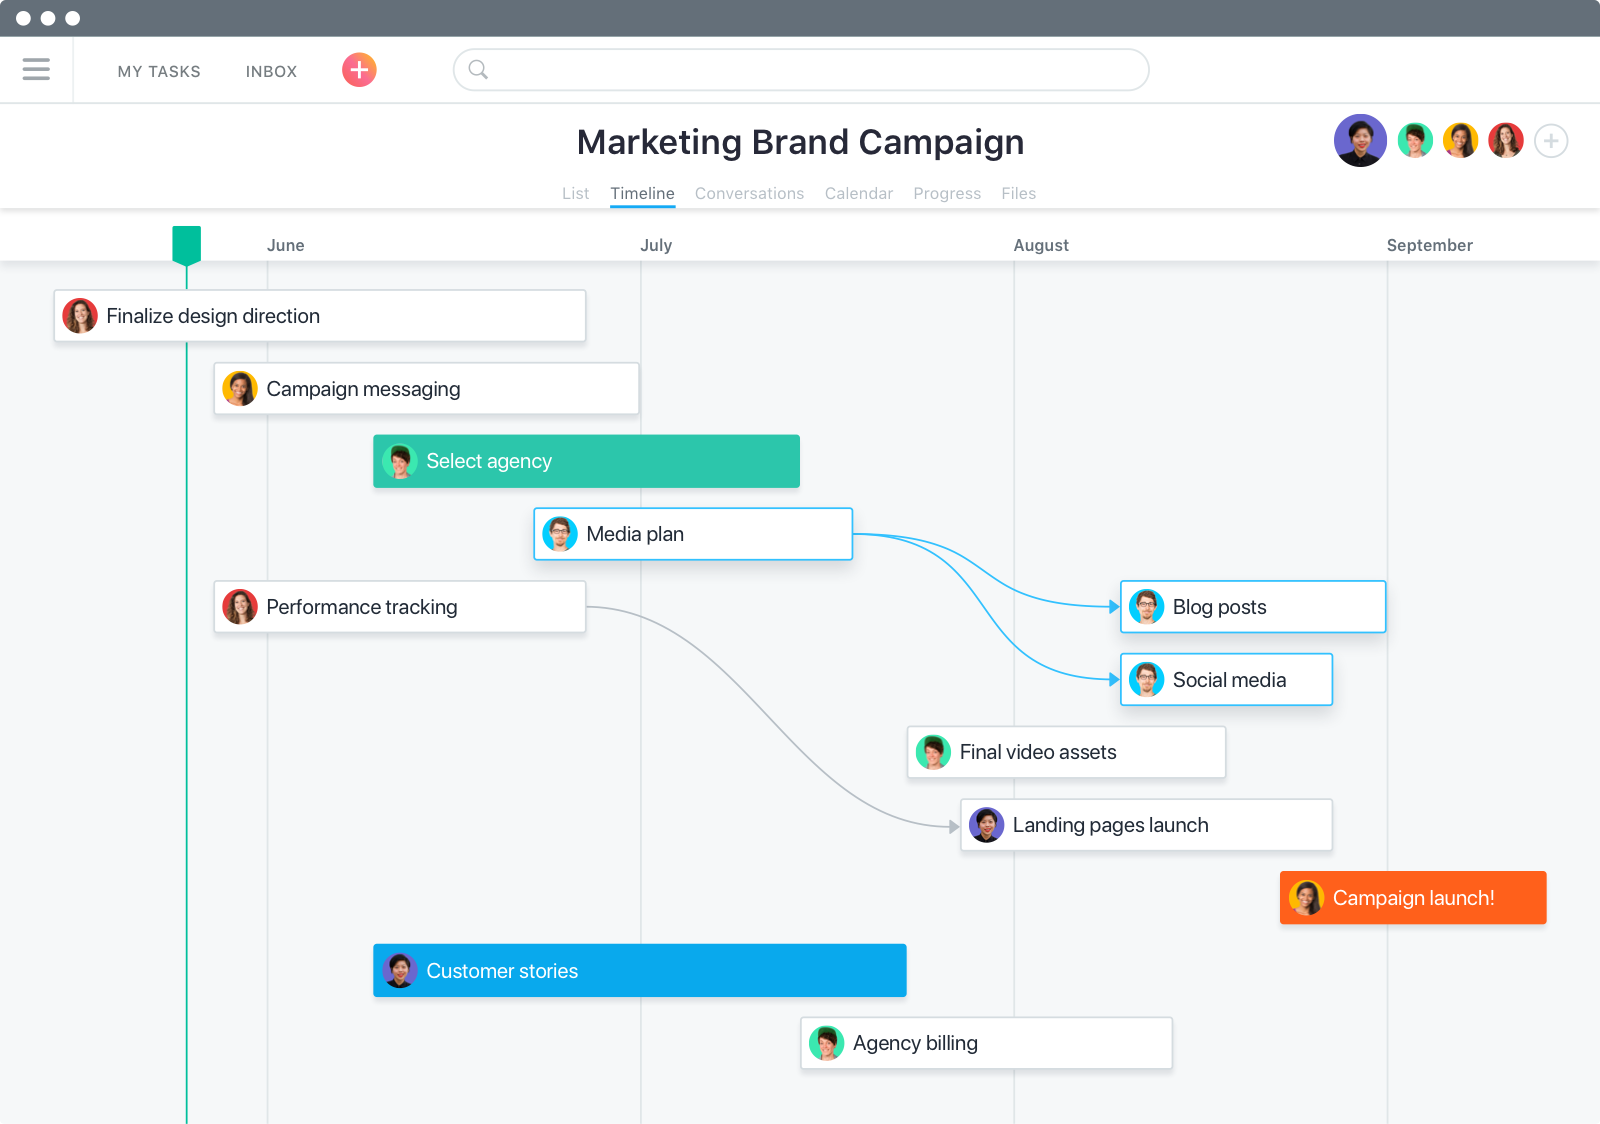 Manage your marketing campaign